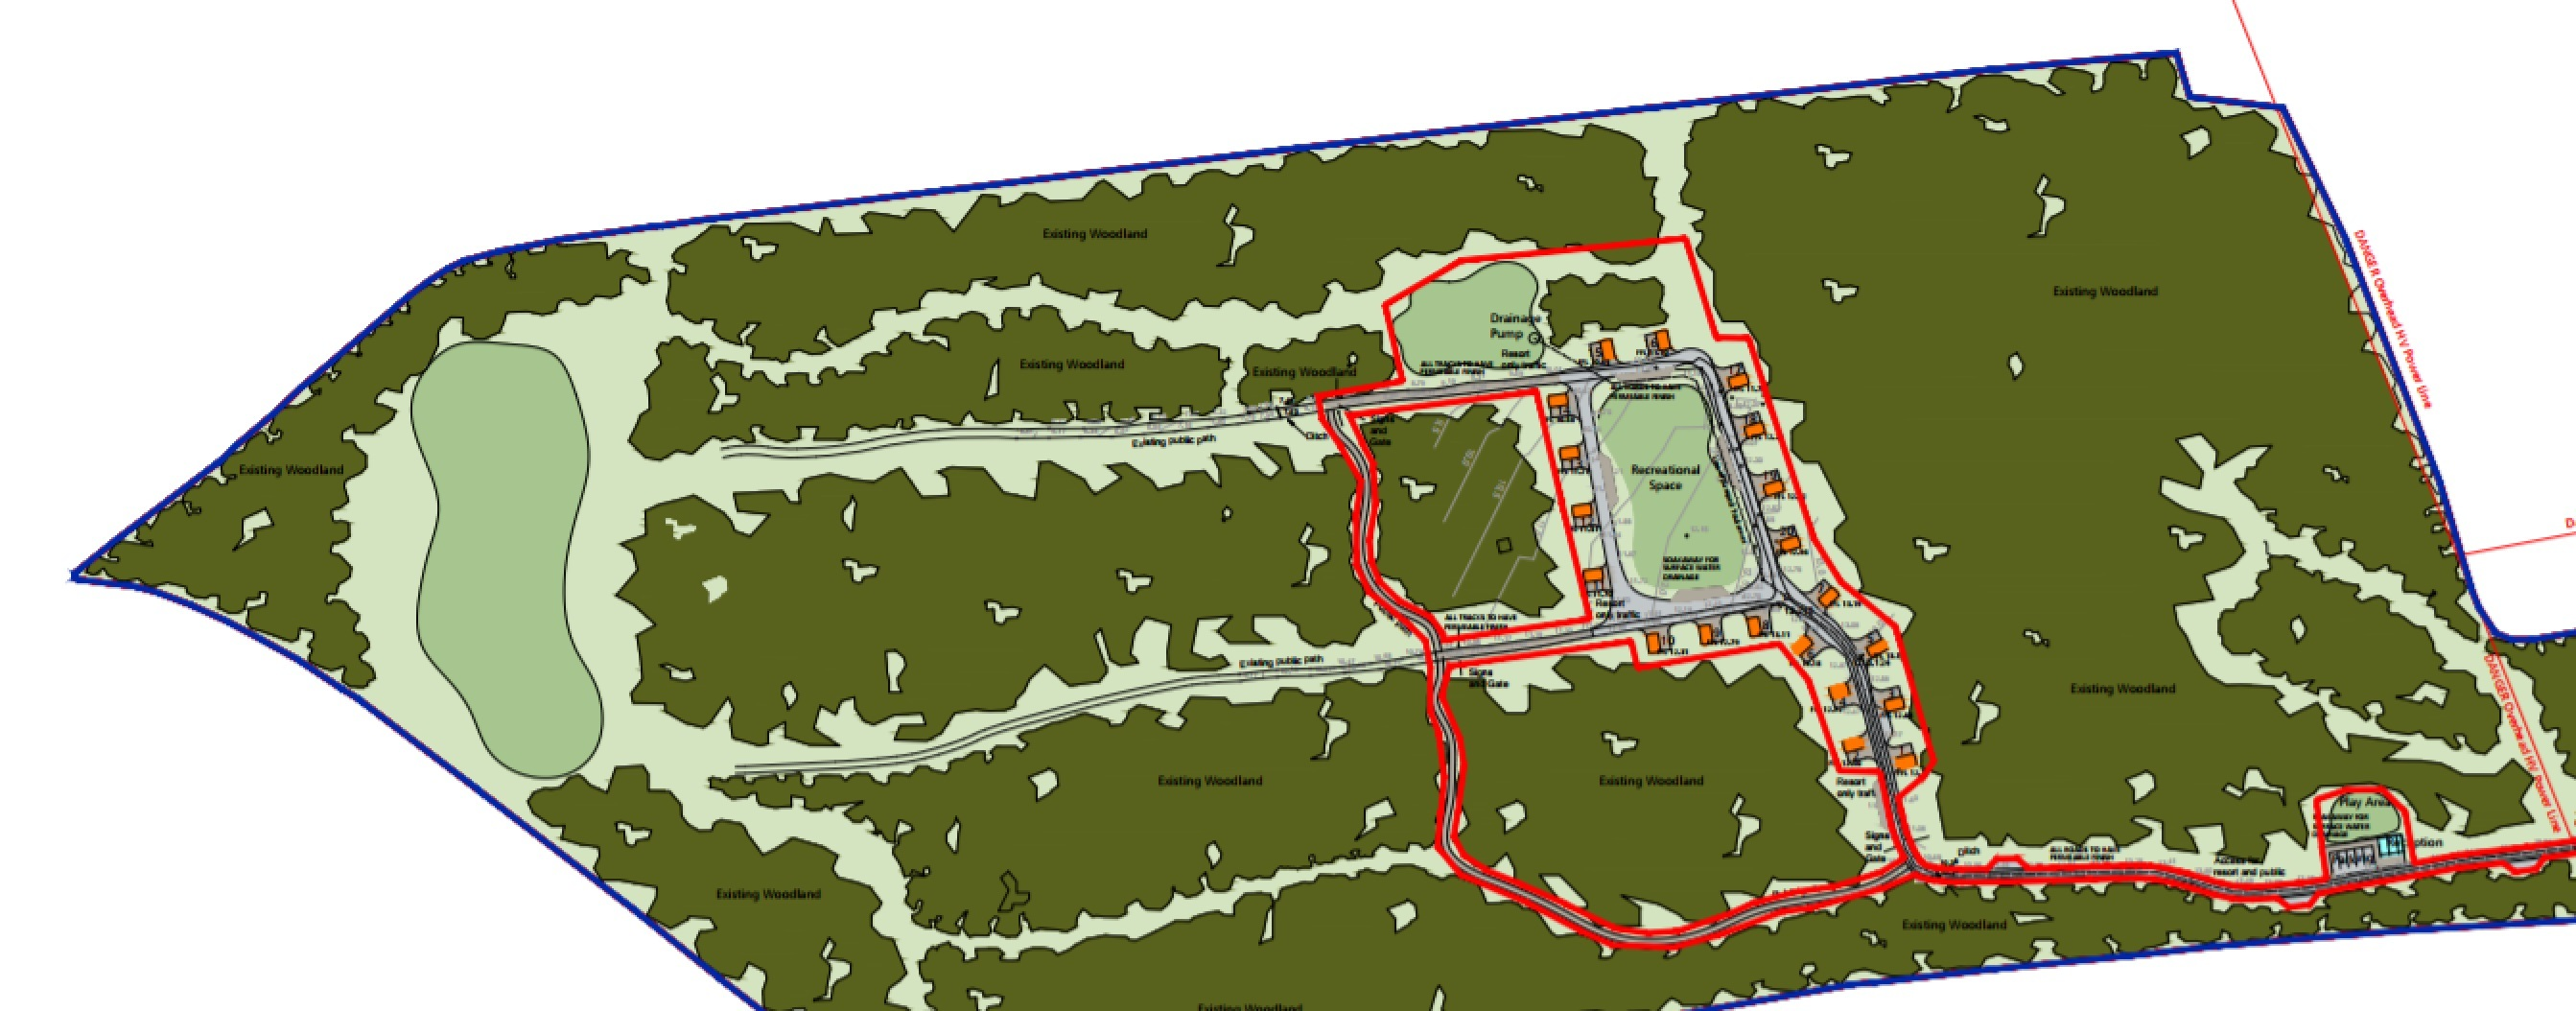 The planned site layout